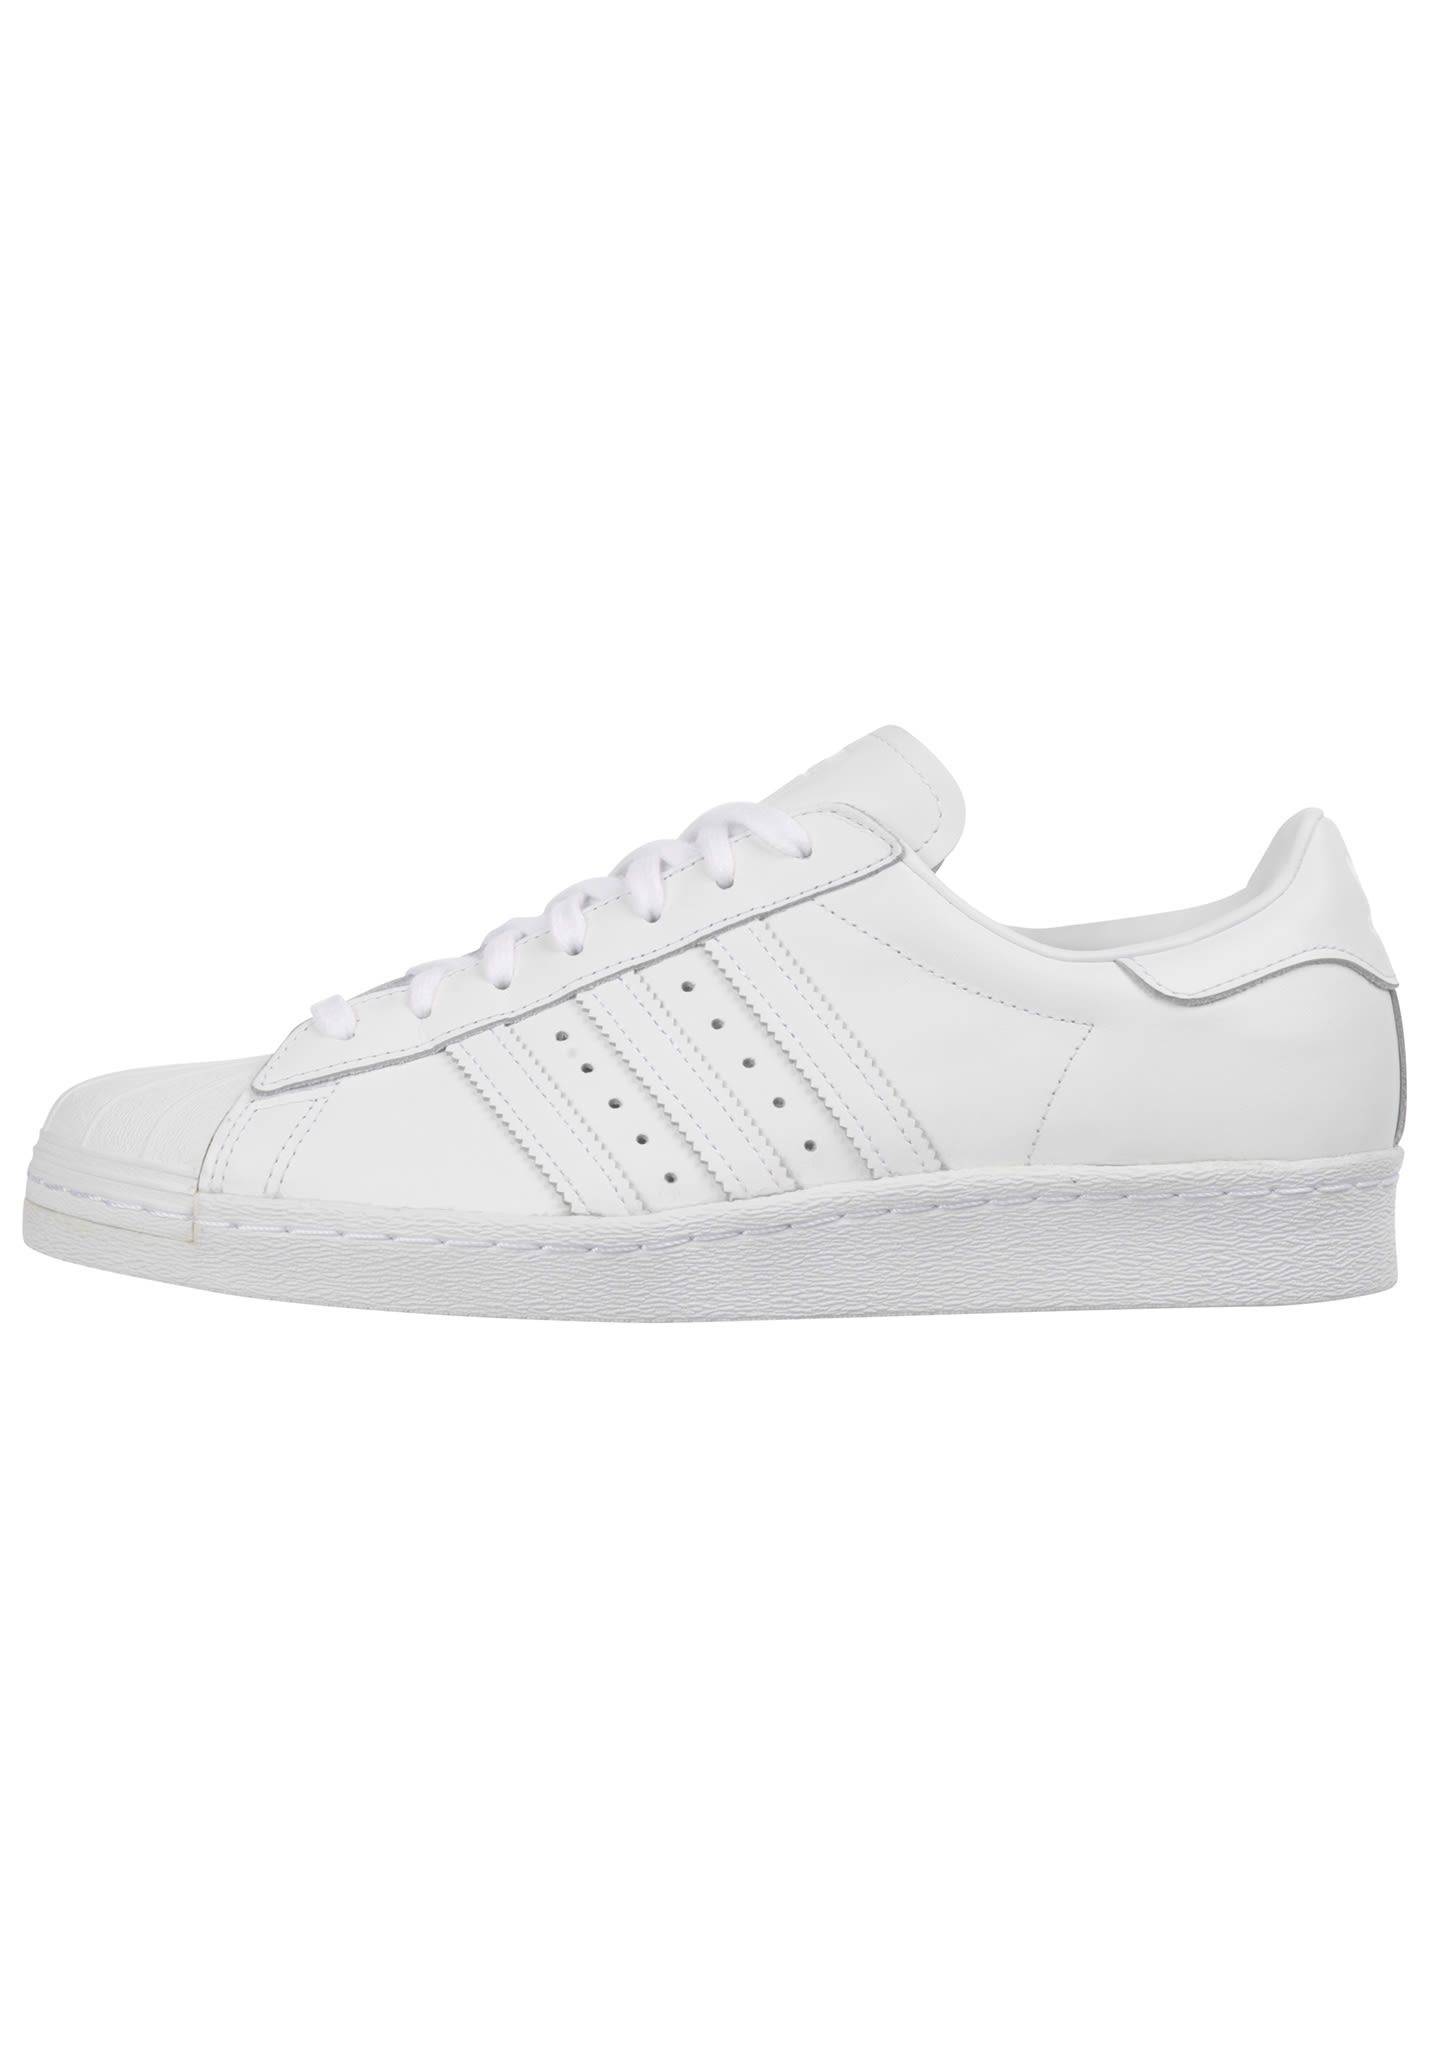 taille 40 aa131 848b0 ADIDAS ORIGINALS Superstar 80S - Sneakers for Men - White